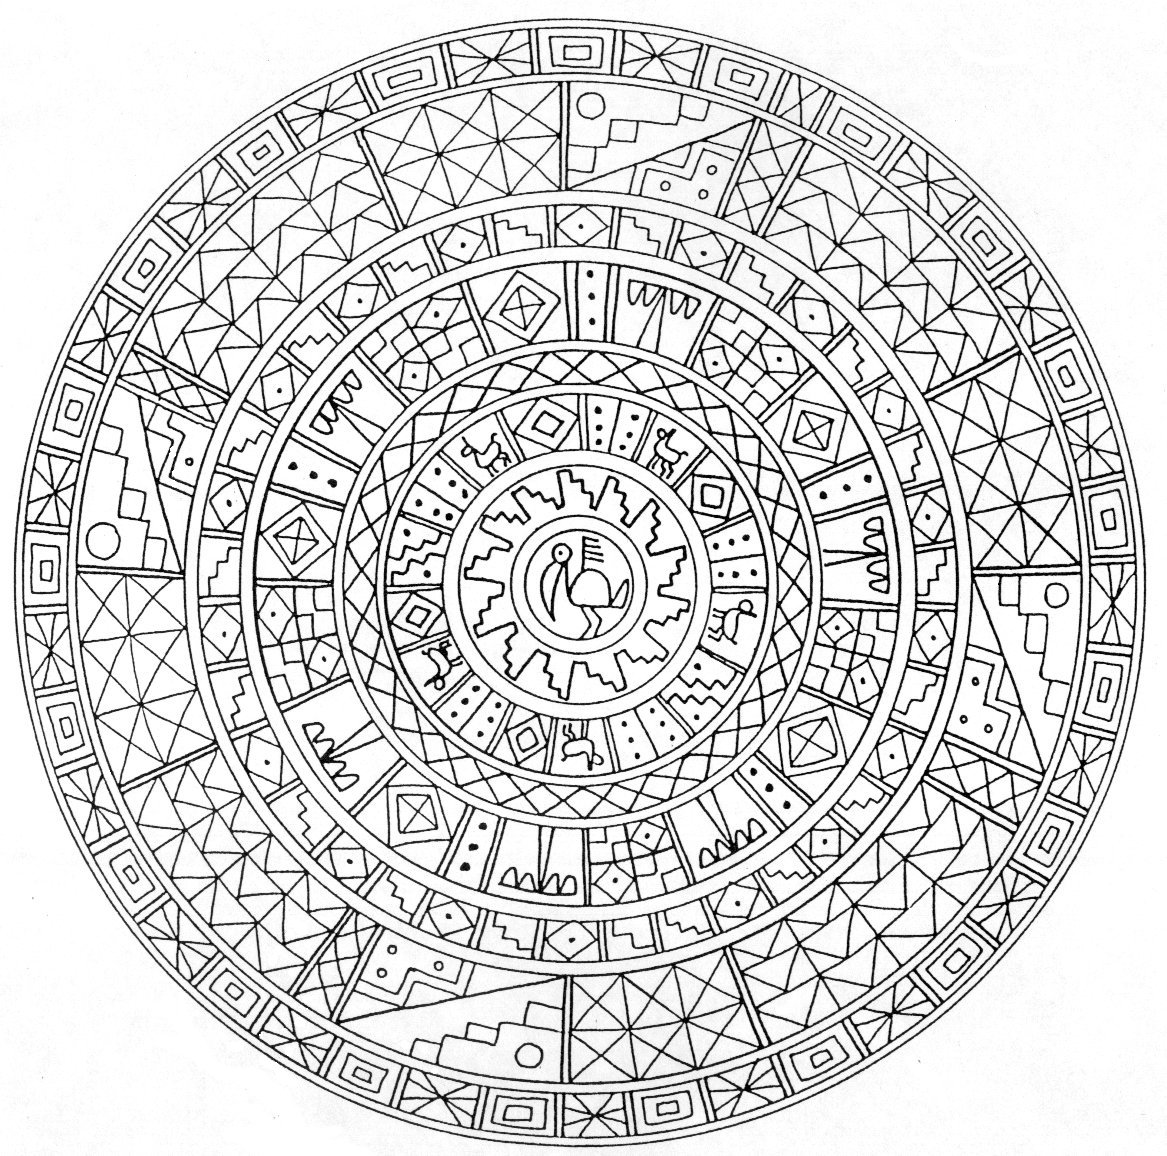 Mandala Coloring Page for Experts